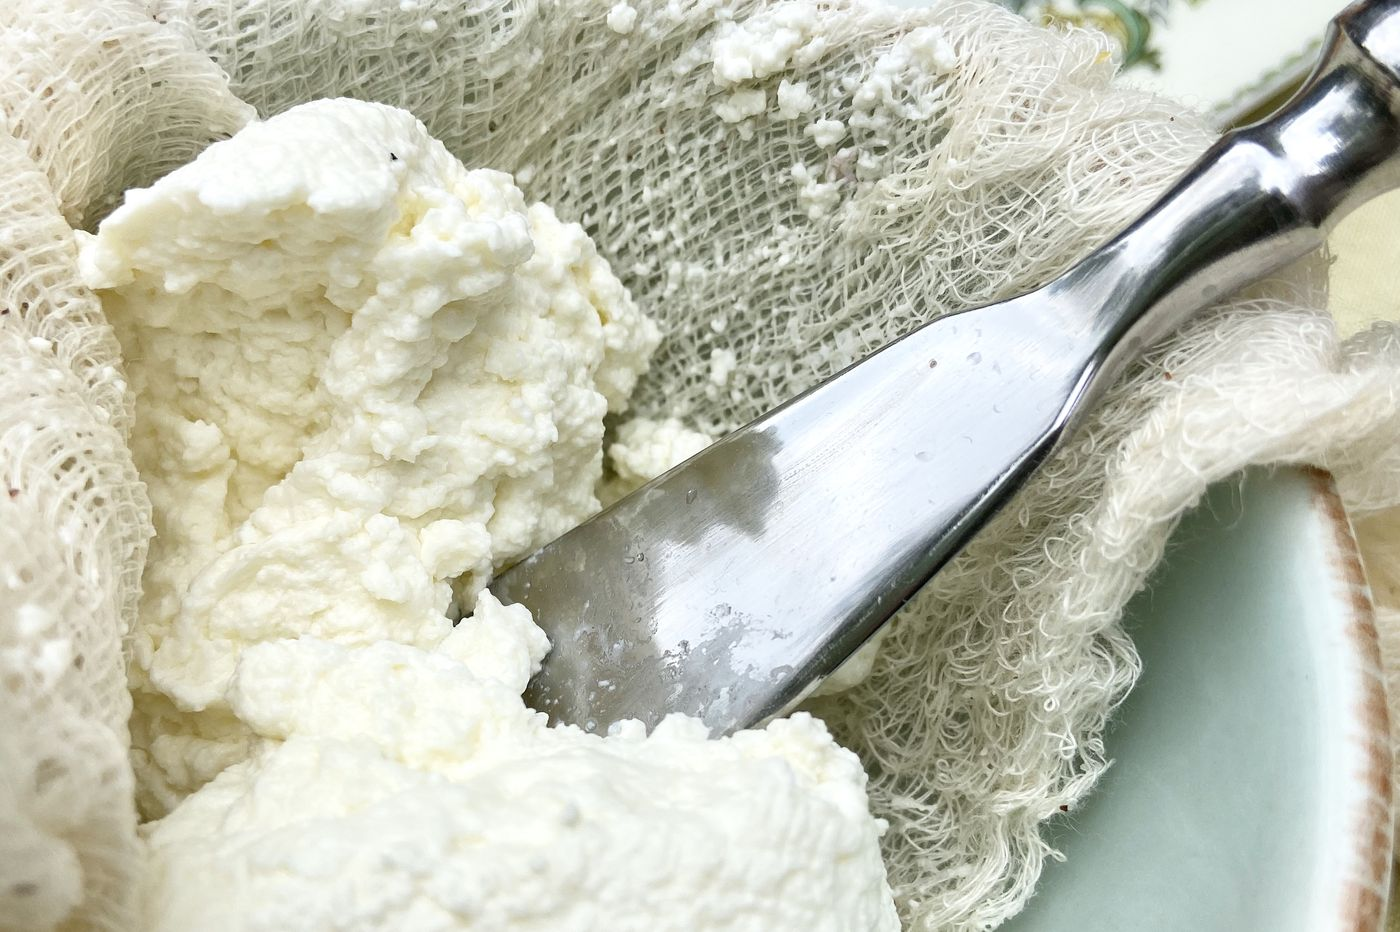 If a recipe calls for ricotta, you can make it at home